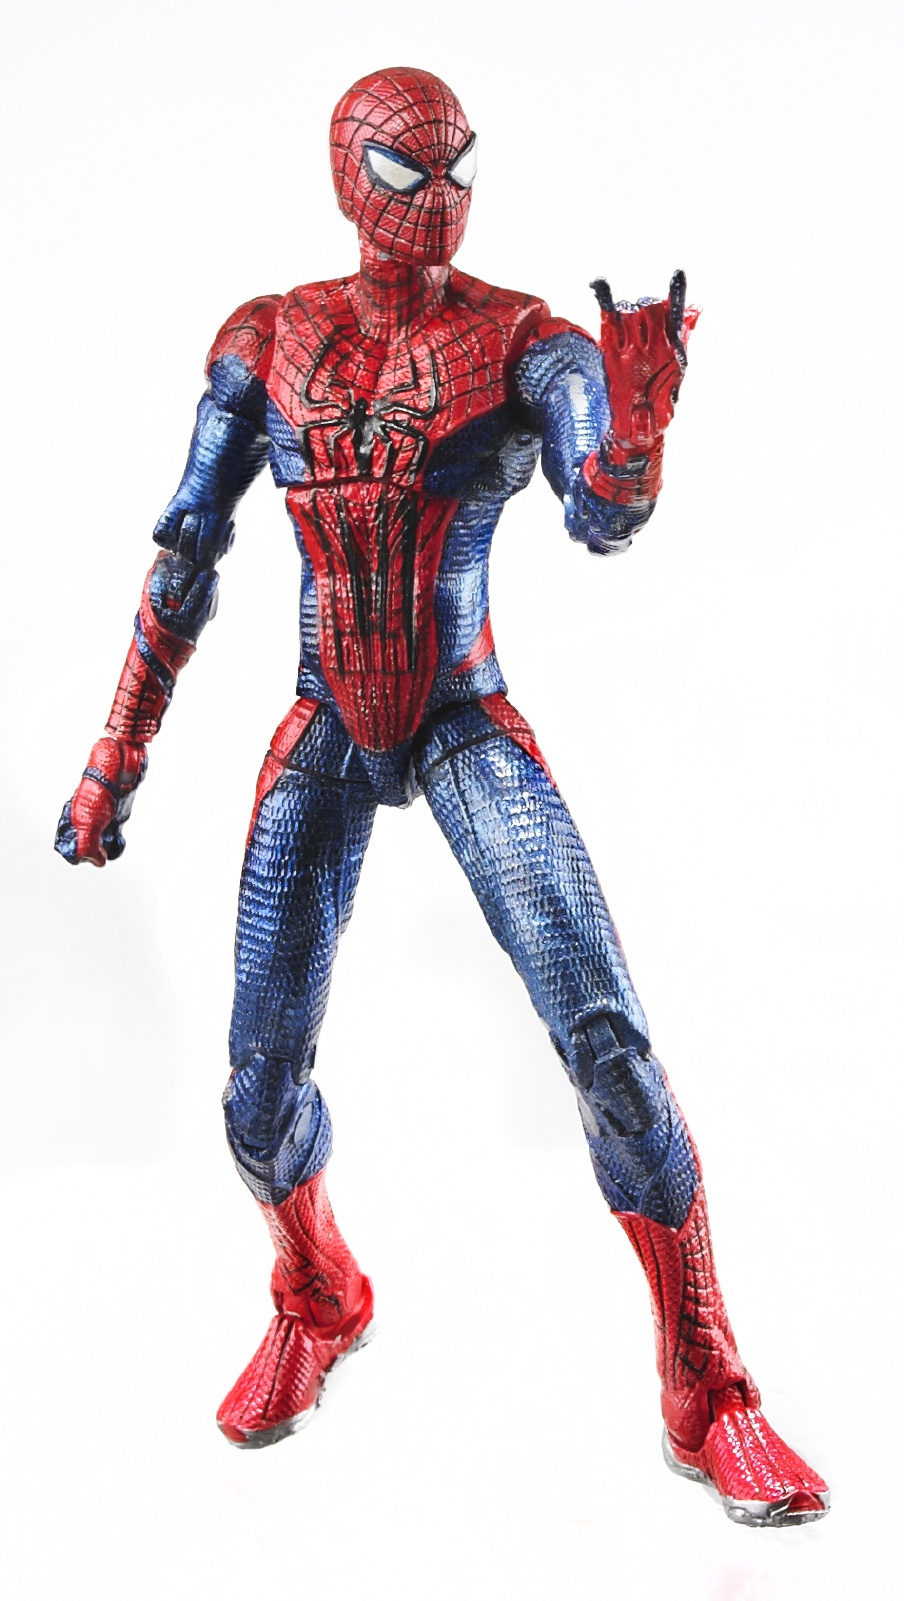 Spider Man Toys : First look at amazing spider man movie toys